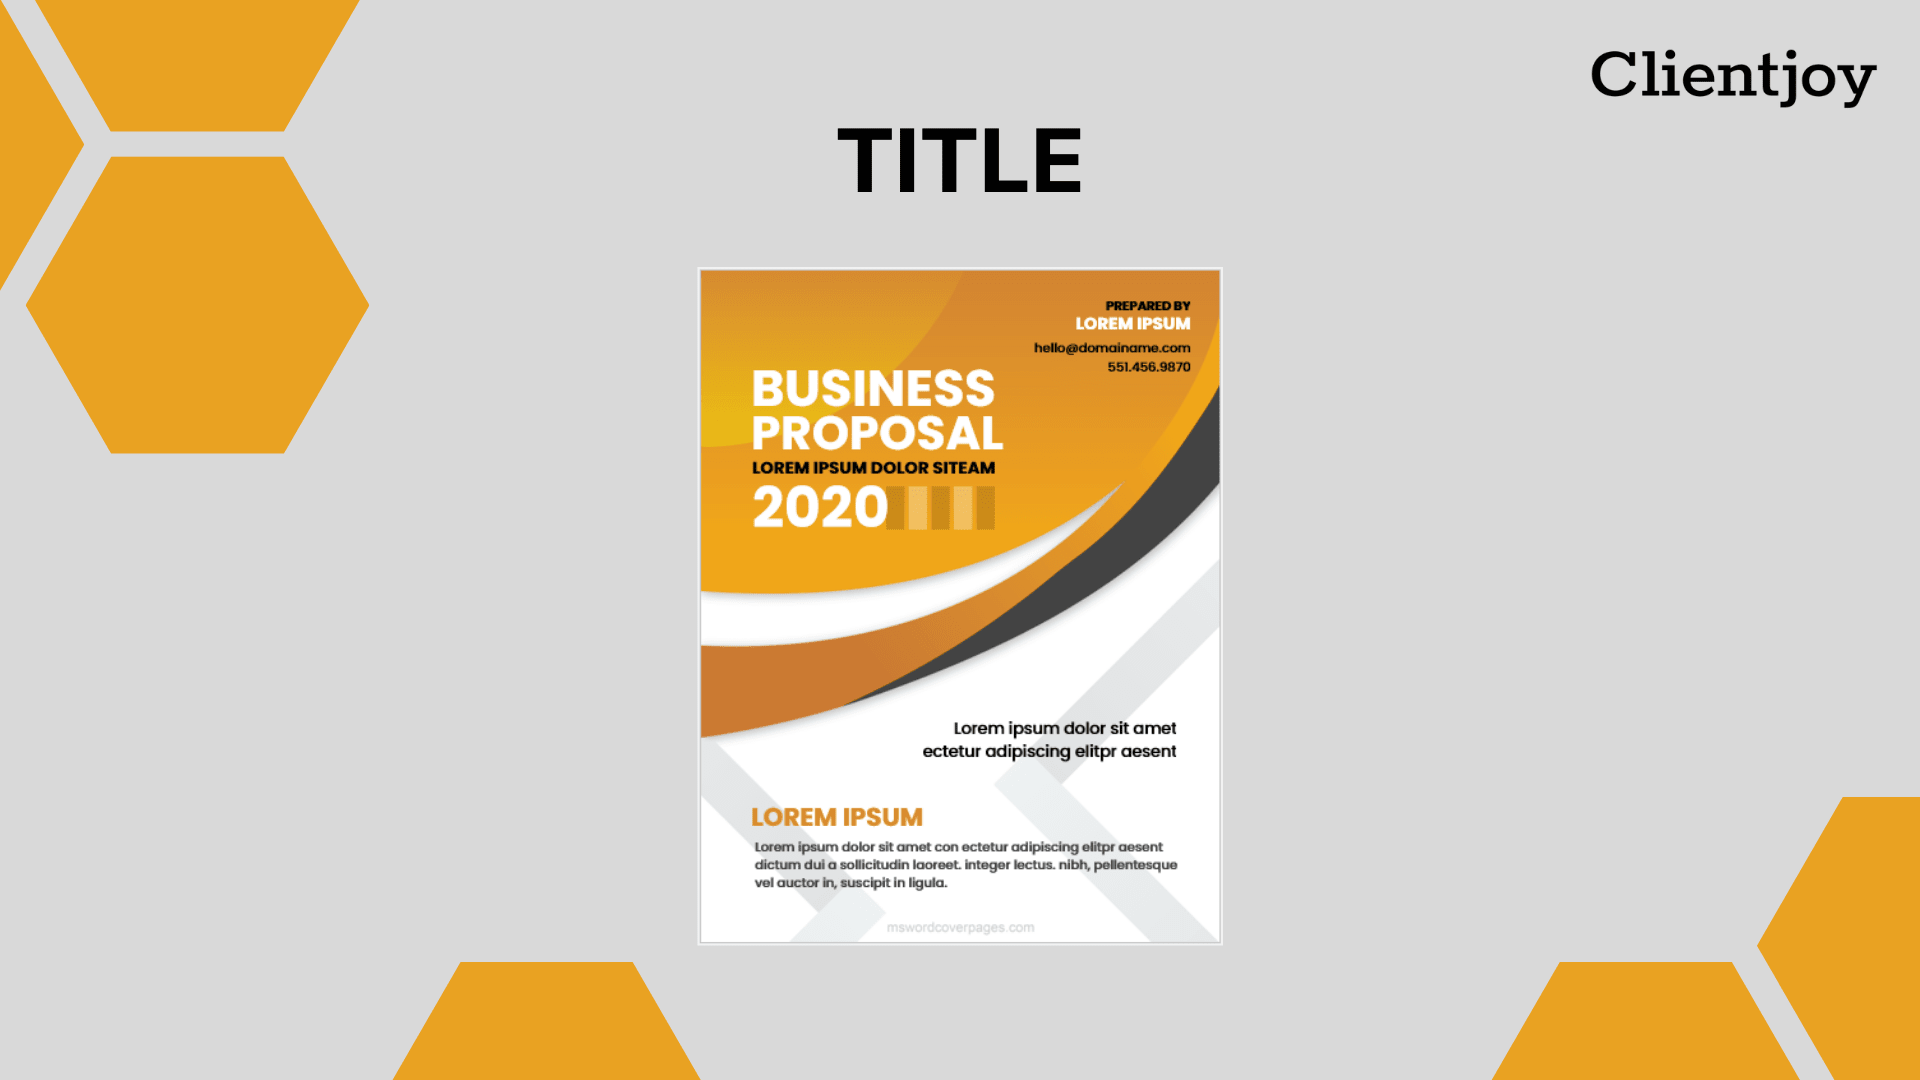 Business Proposal| Title Page